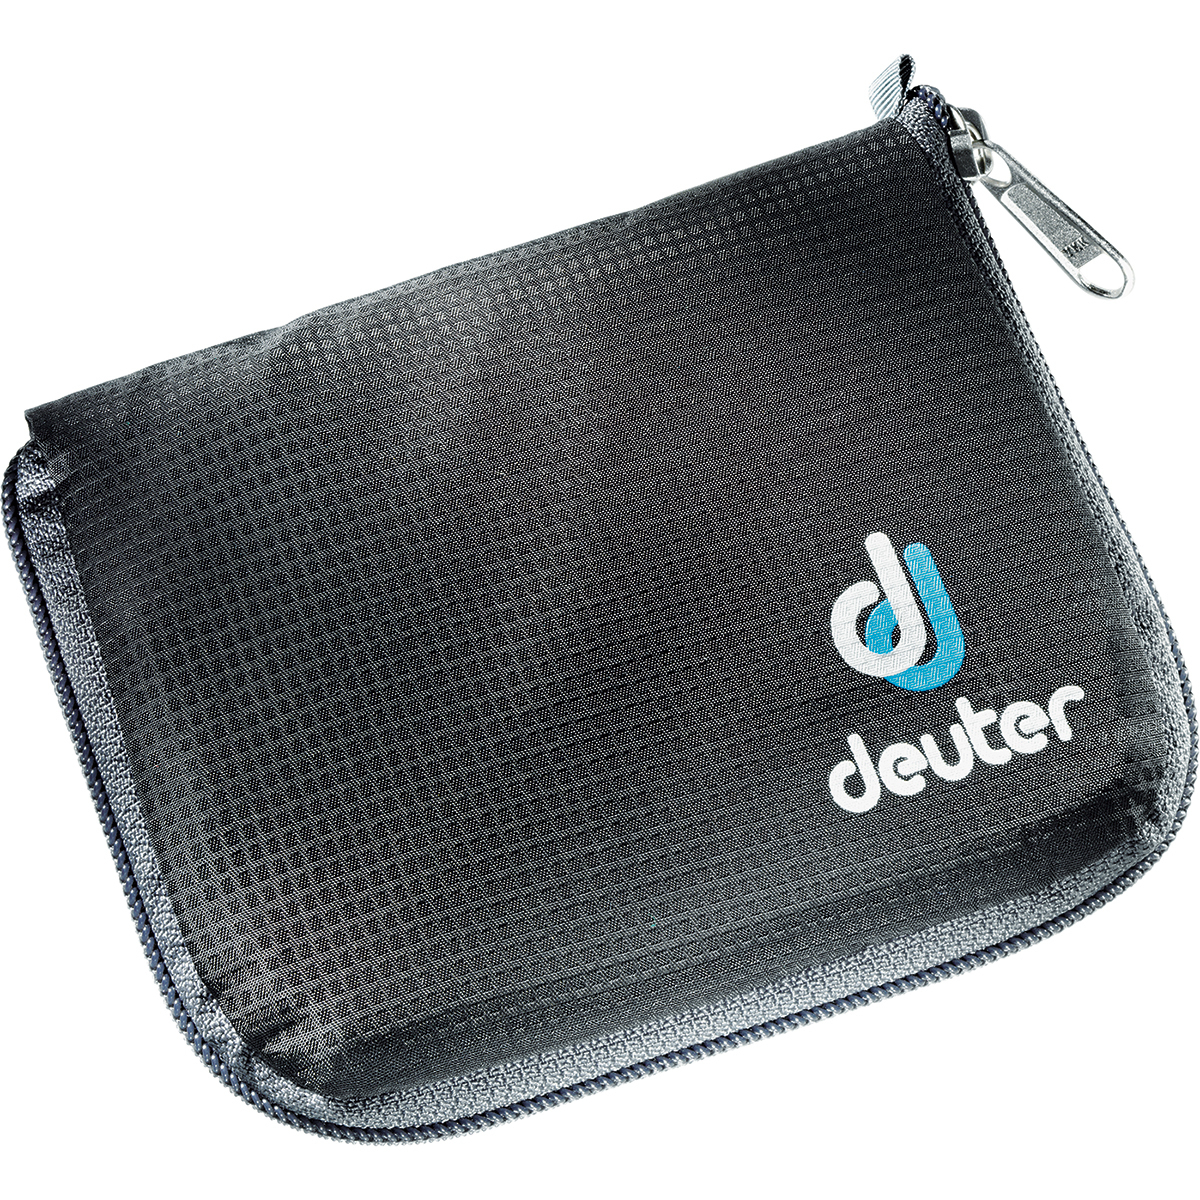 Кошельки Кошелек Deuter Zip Wallet RFID BLOCK (2020) 5019025-003_pic1.jpg